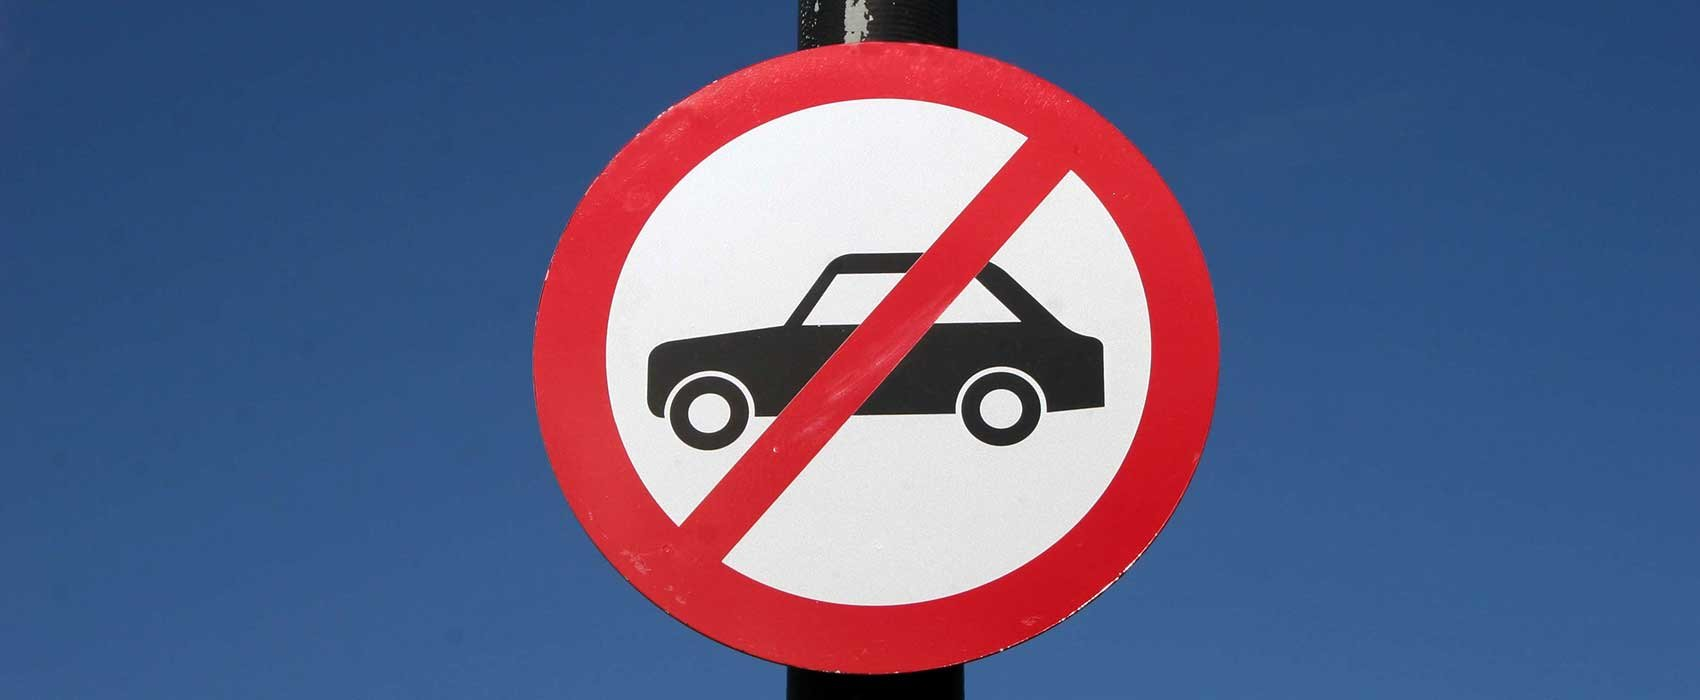 Sign Showing No Cars